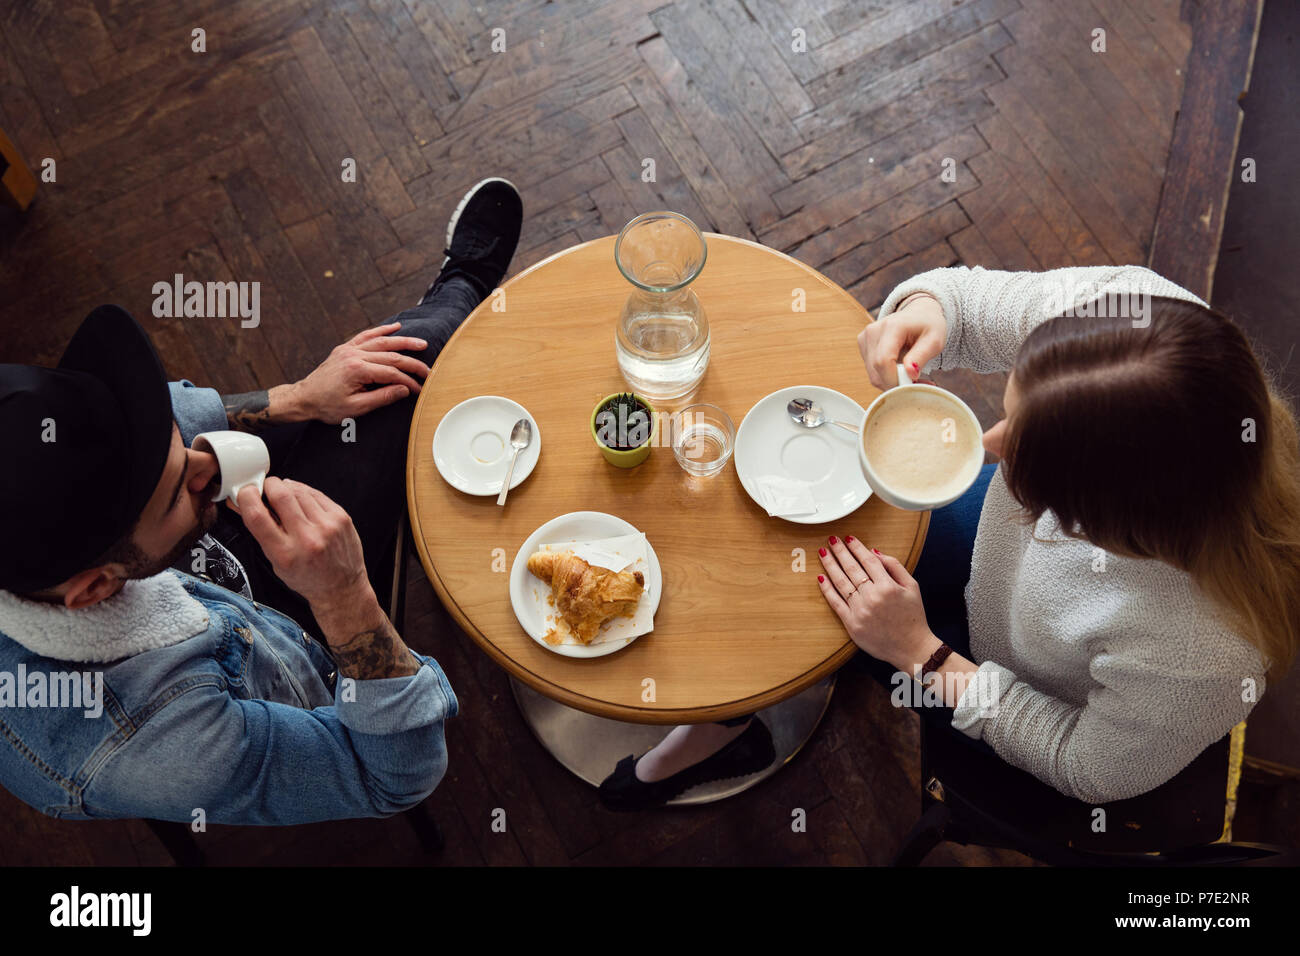 Couple having coffee in cafe - Stock Image